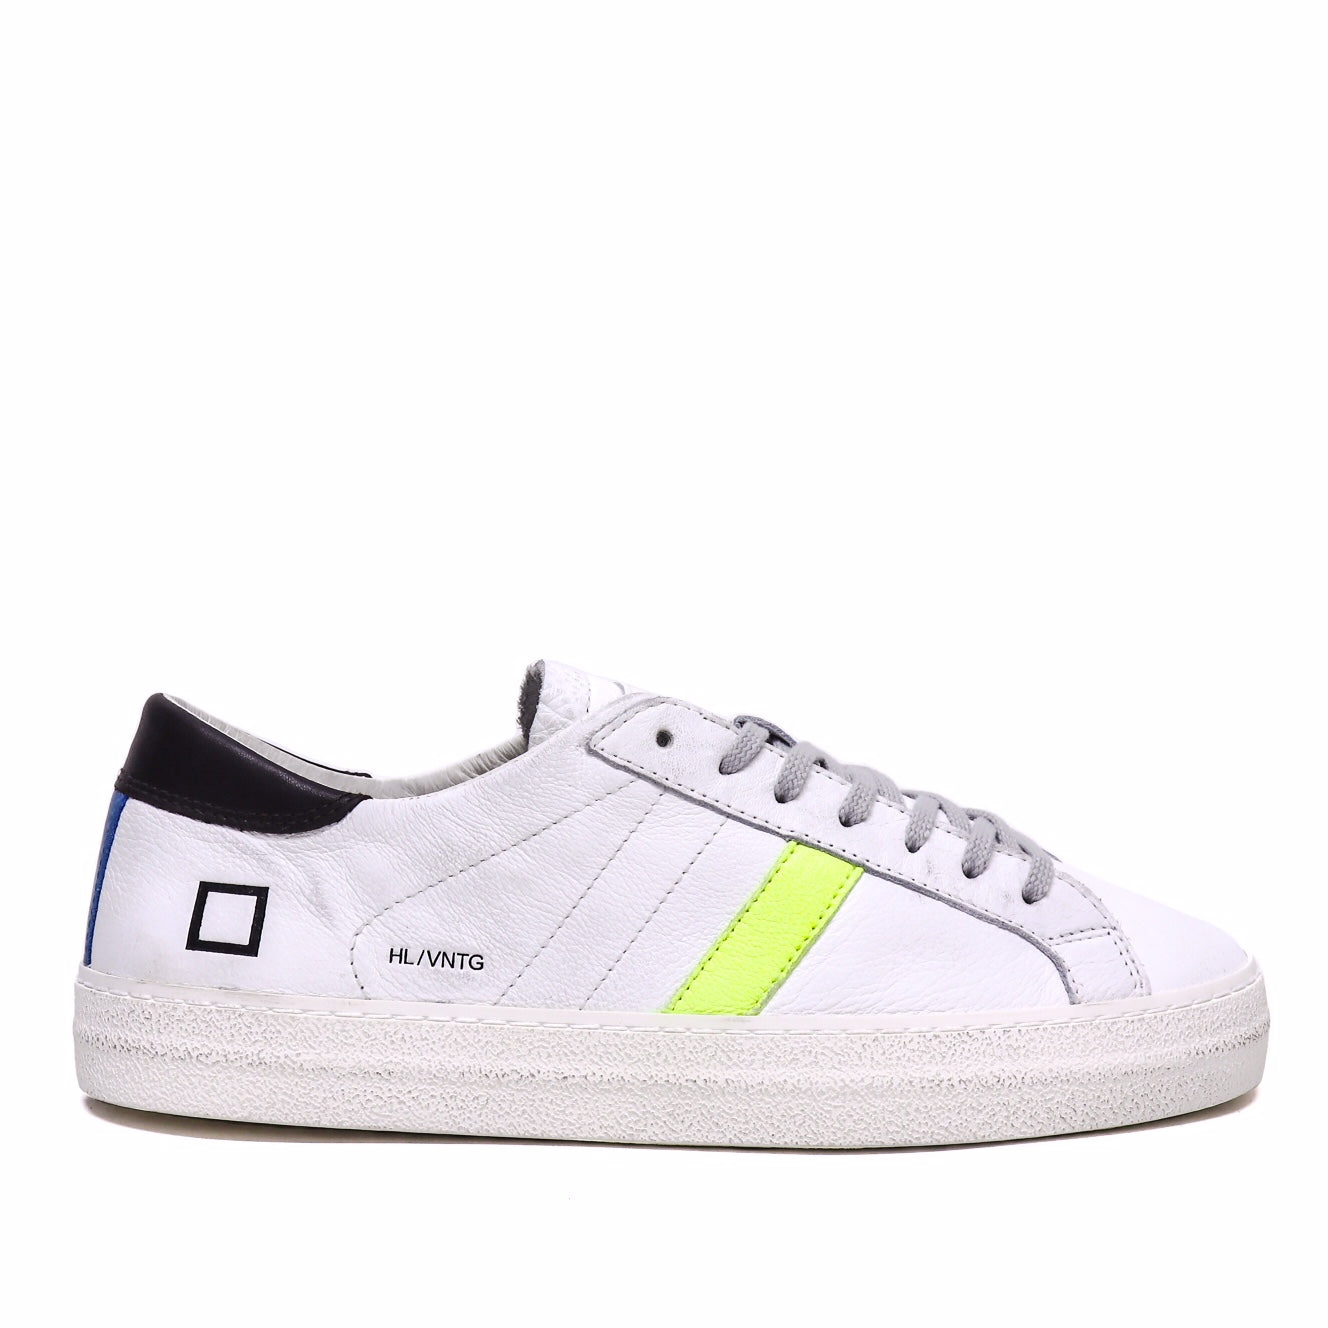 D.a.t.e Sneaker Hill Low Vintage White Yellow Date M